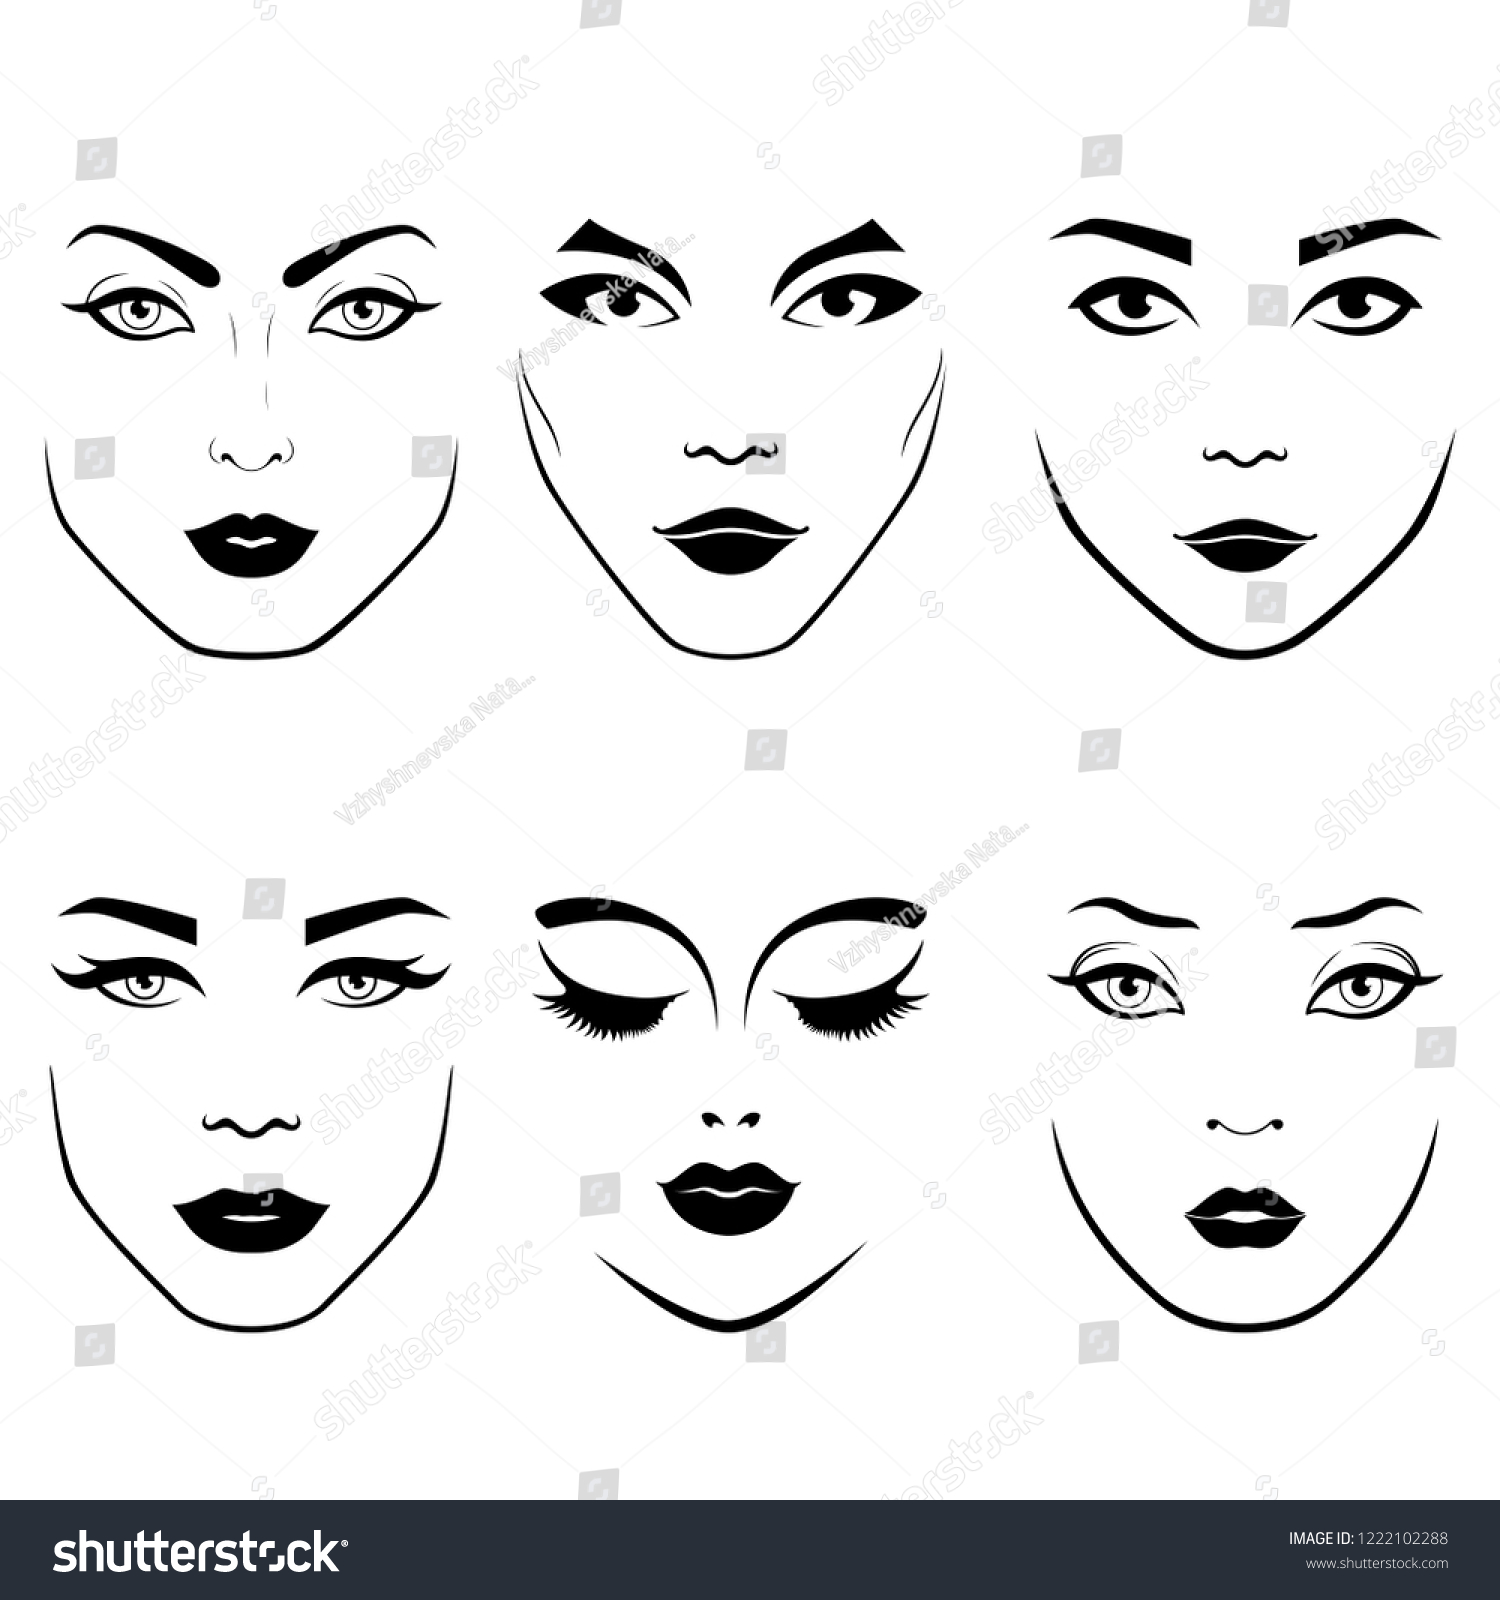 Stylized set of fashionable womens faces with distinctive eyes and lips as face care